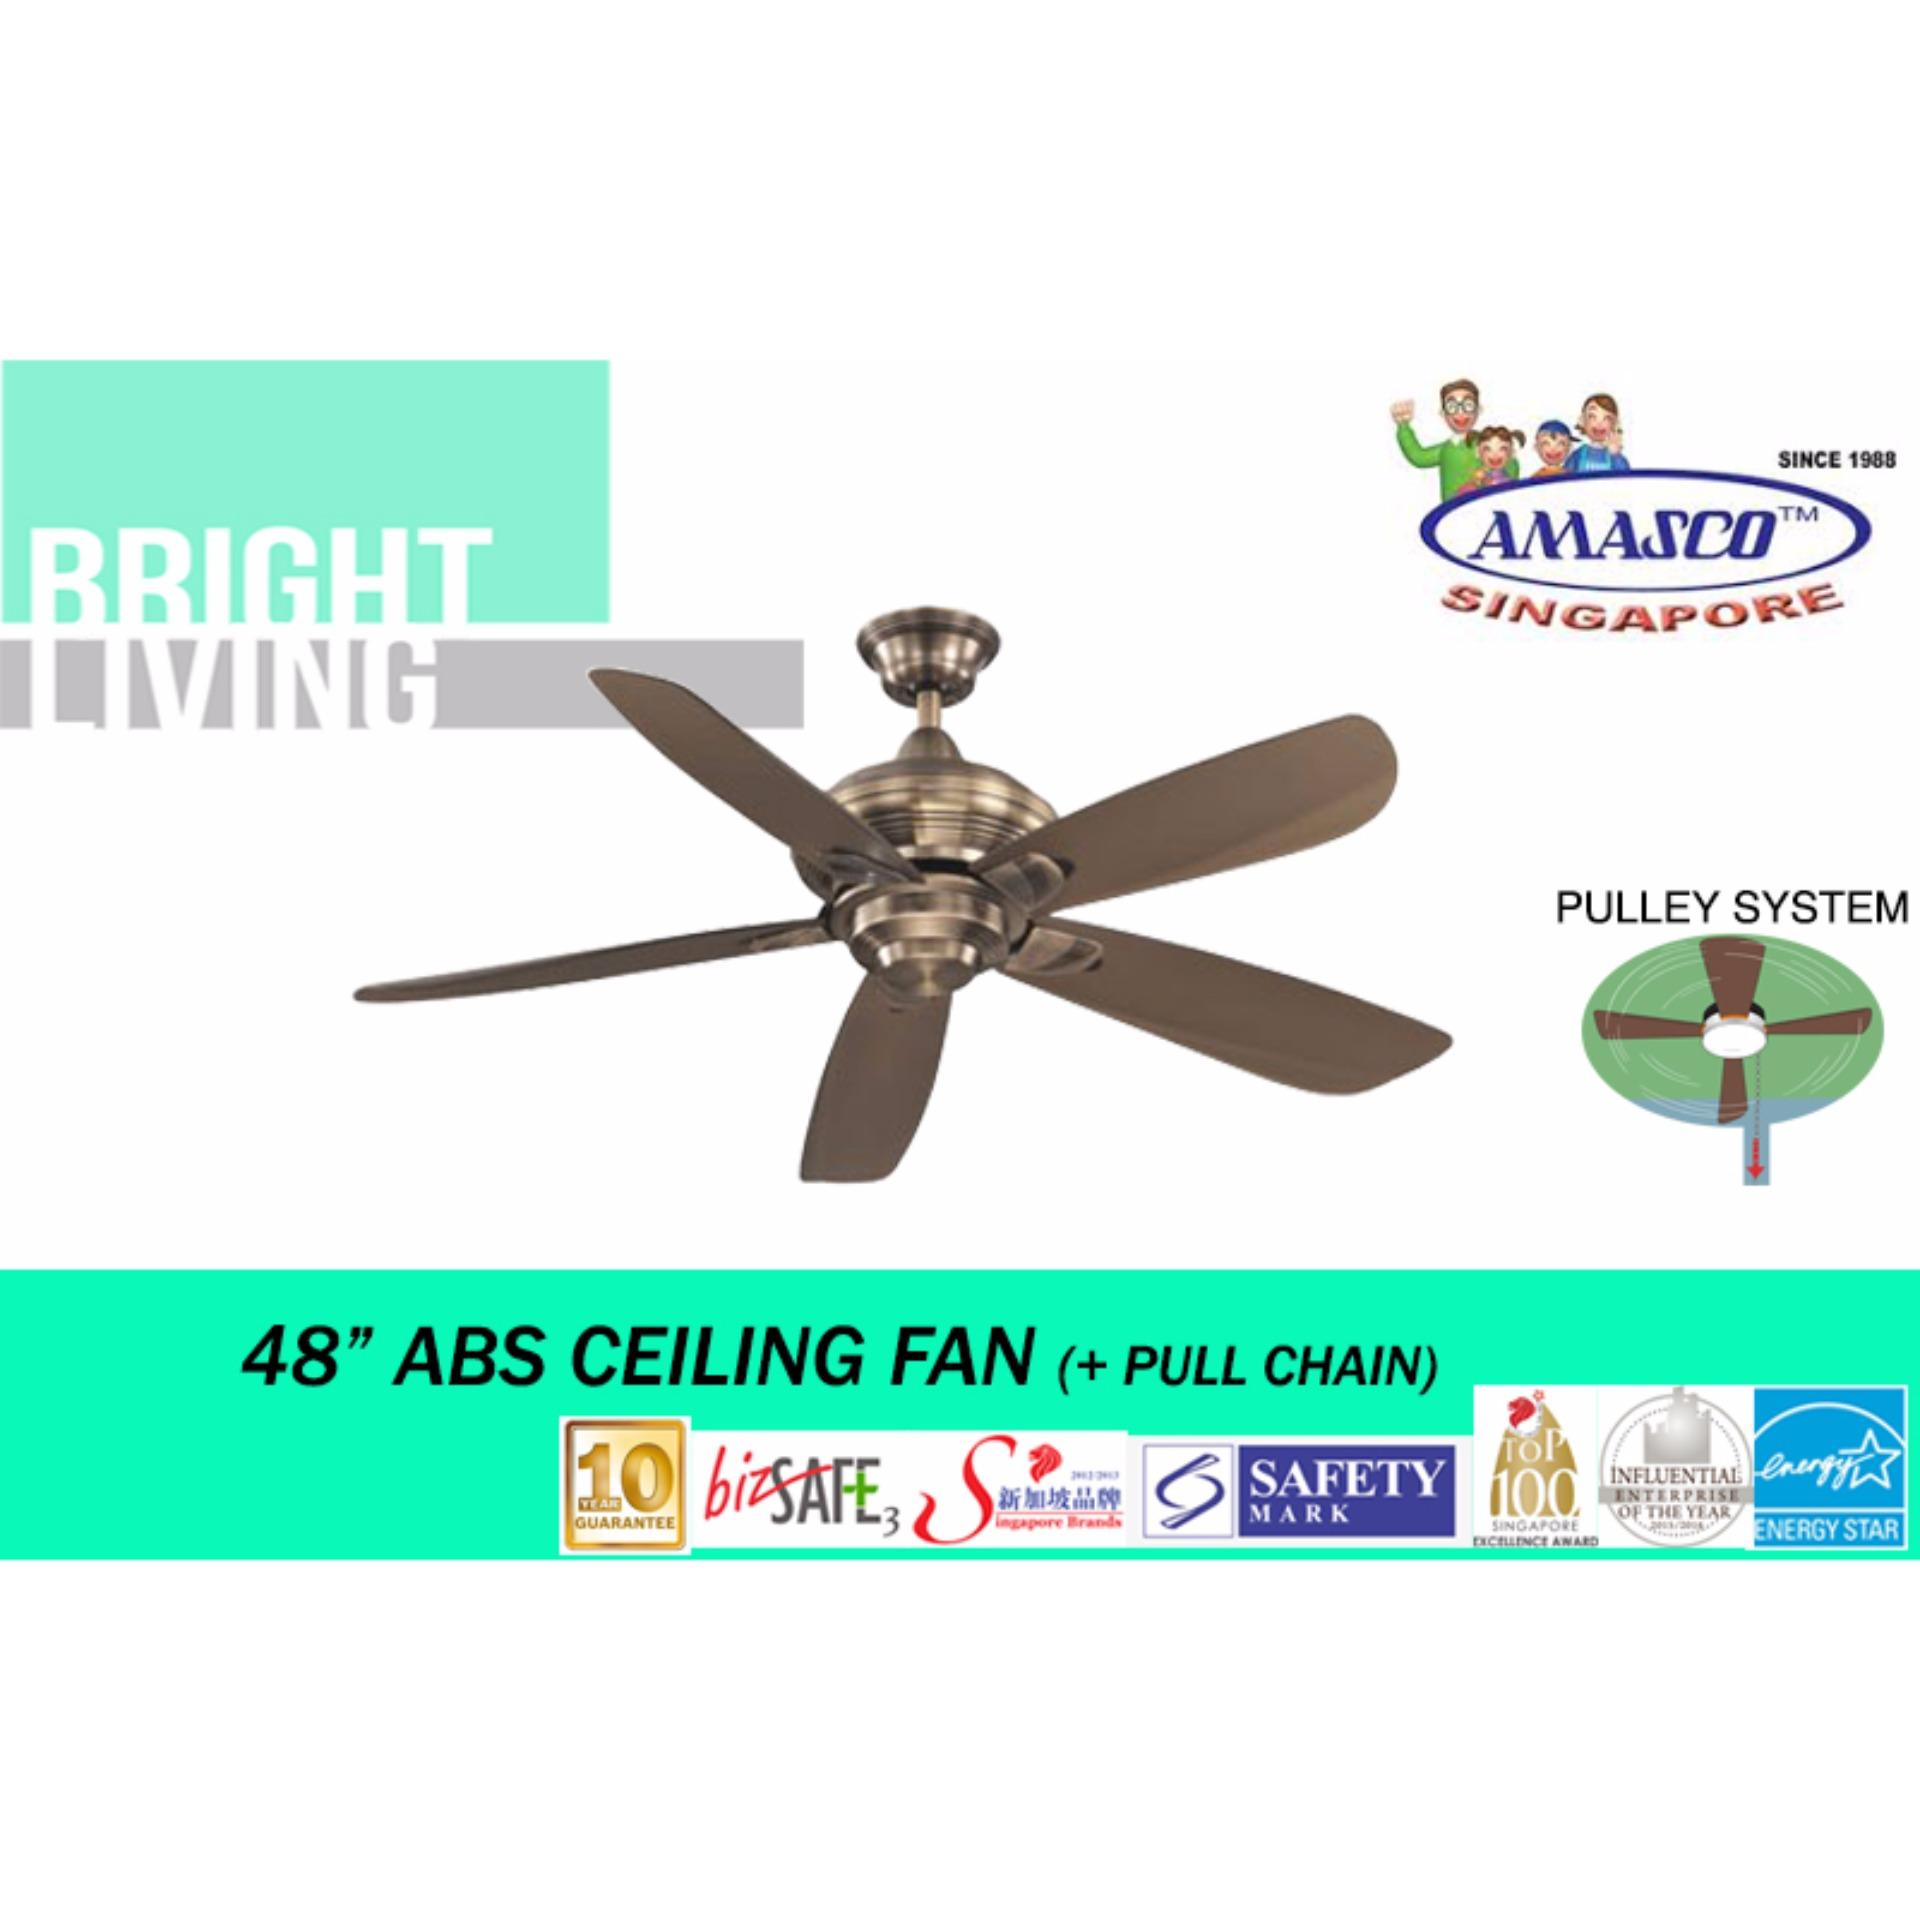 Airwolf 48 ceiling fan with pull chain only singapore amasco airwolf 48 ceiling fan with pull chain only singapore aloadofball Gallery